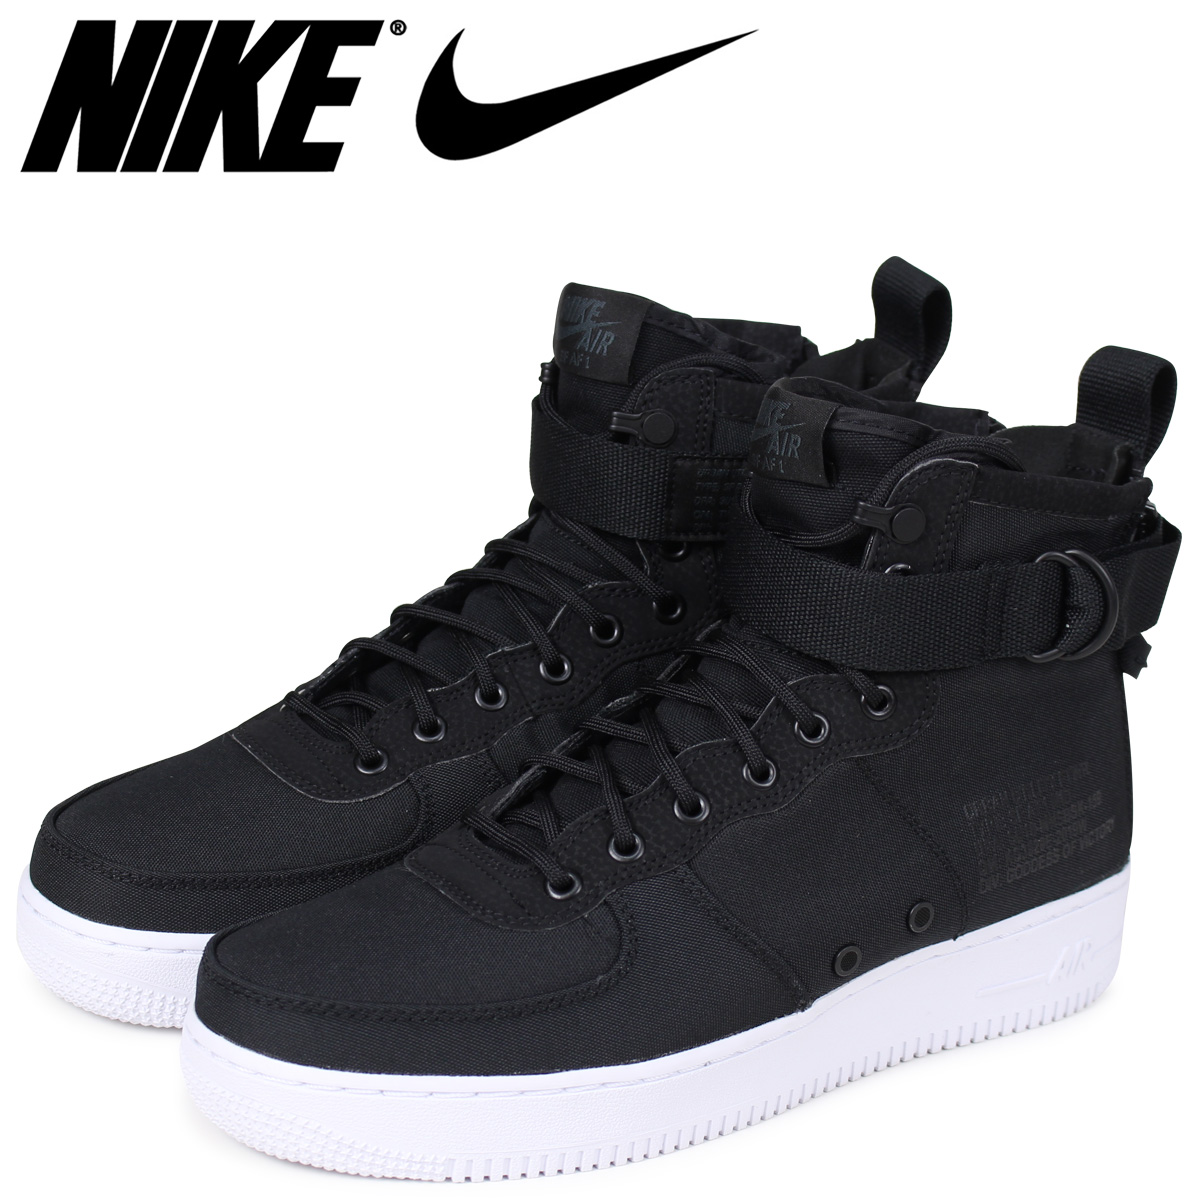 brand new 081d2 5ca5d NIKE Nike air force 1 MID sneakers men special field SPECIAL FIELD AIR  FORCE 1 QS 917,753-006 SF AF1 red  load planned Shinnyu load in reservation  product ...